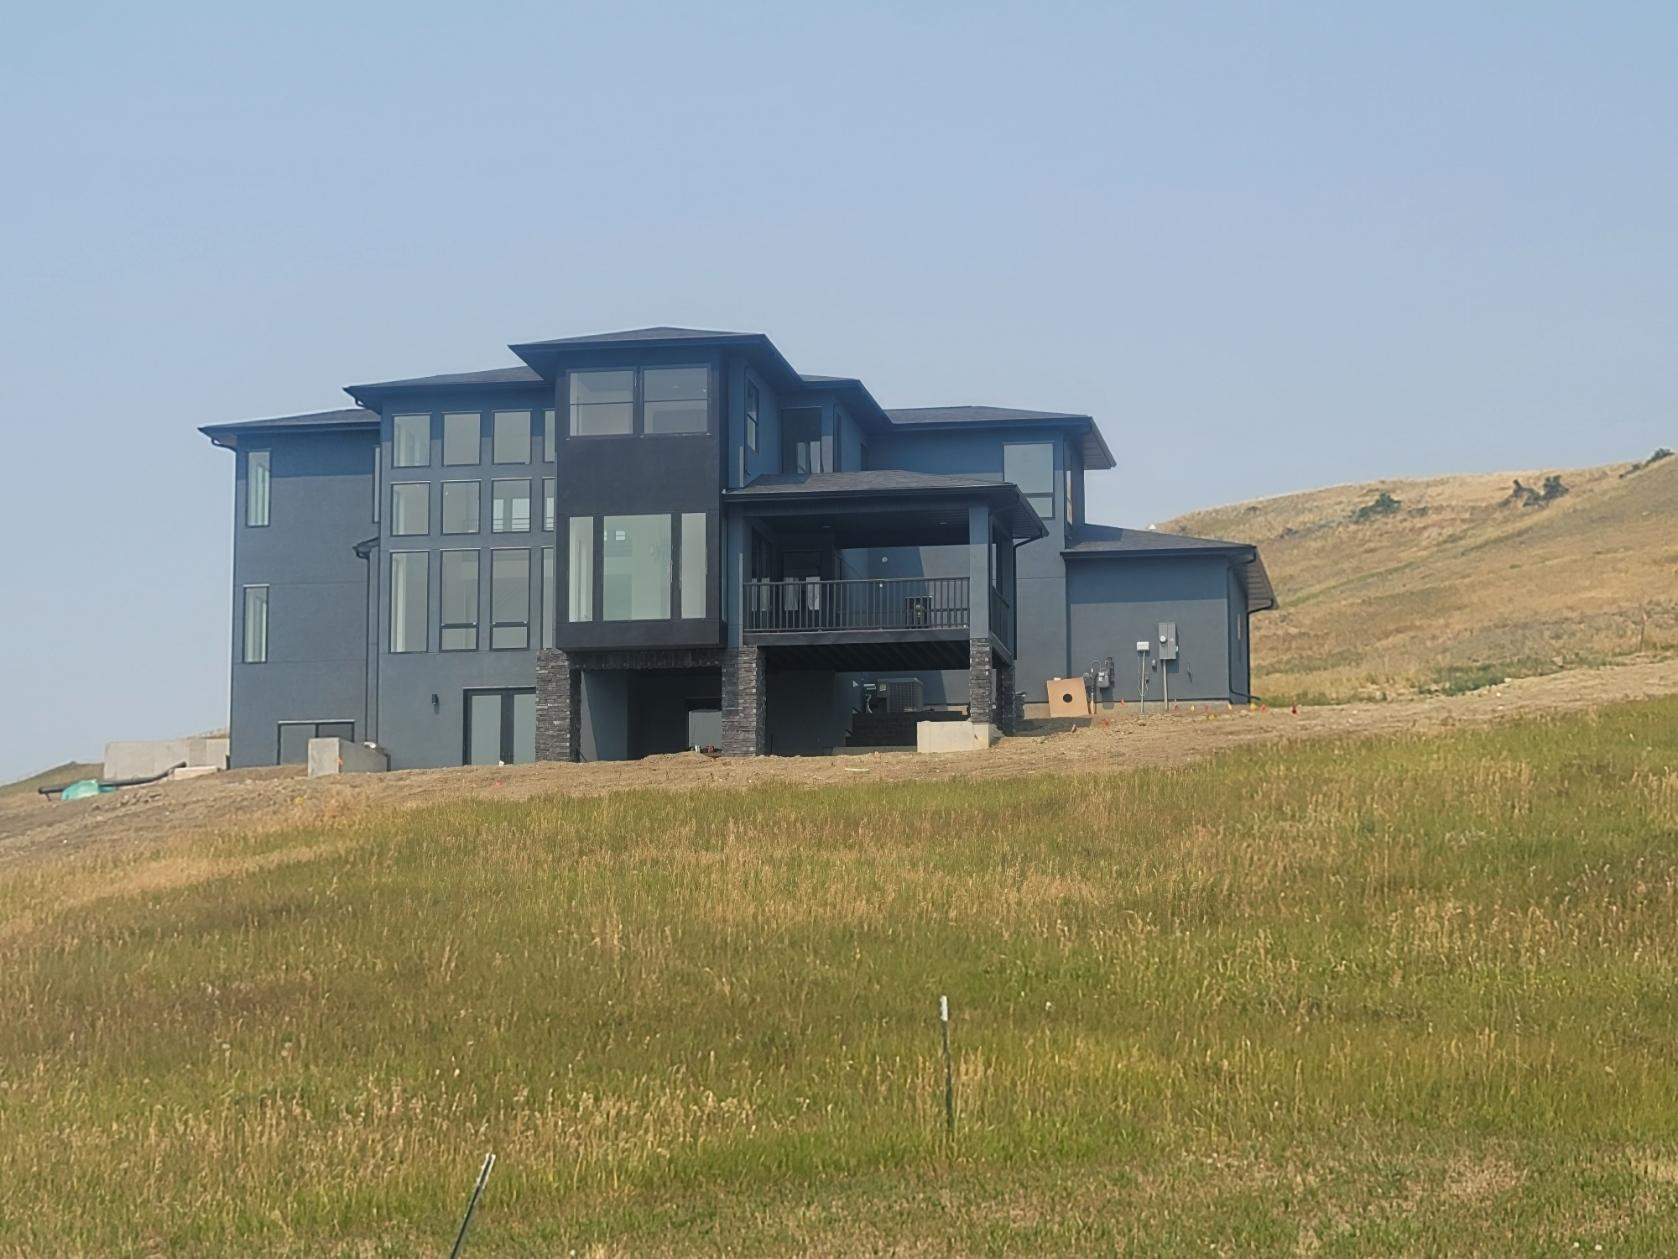 96 Turnberry Drive, Sheridan, Wyoming 82801, 5 Bedrooms Bedrooms, ,3.5 BathroomsBathrooms,Residential,For Sale,Turnberry,21-826